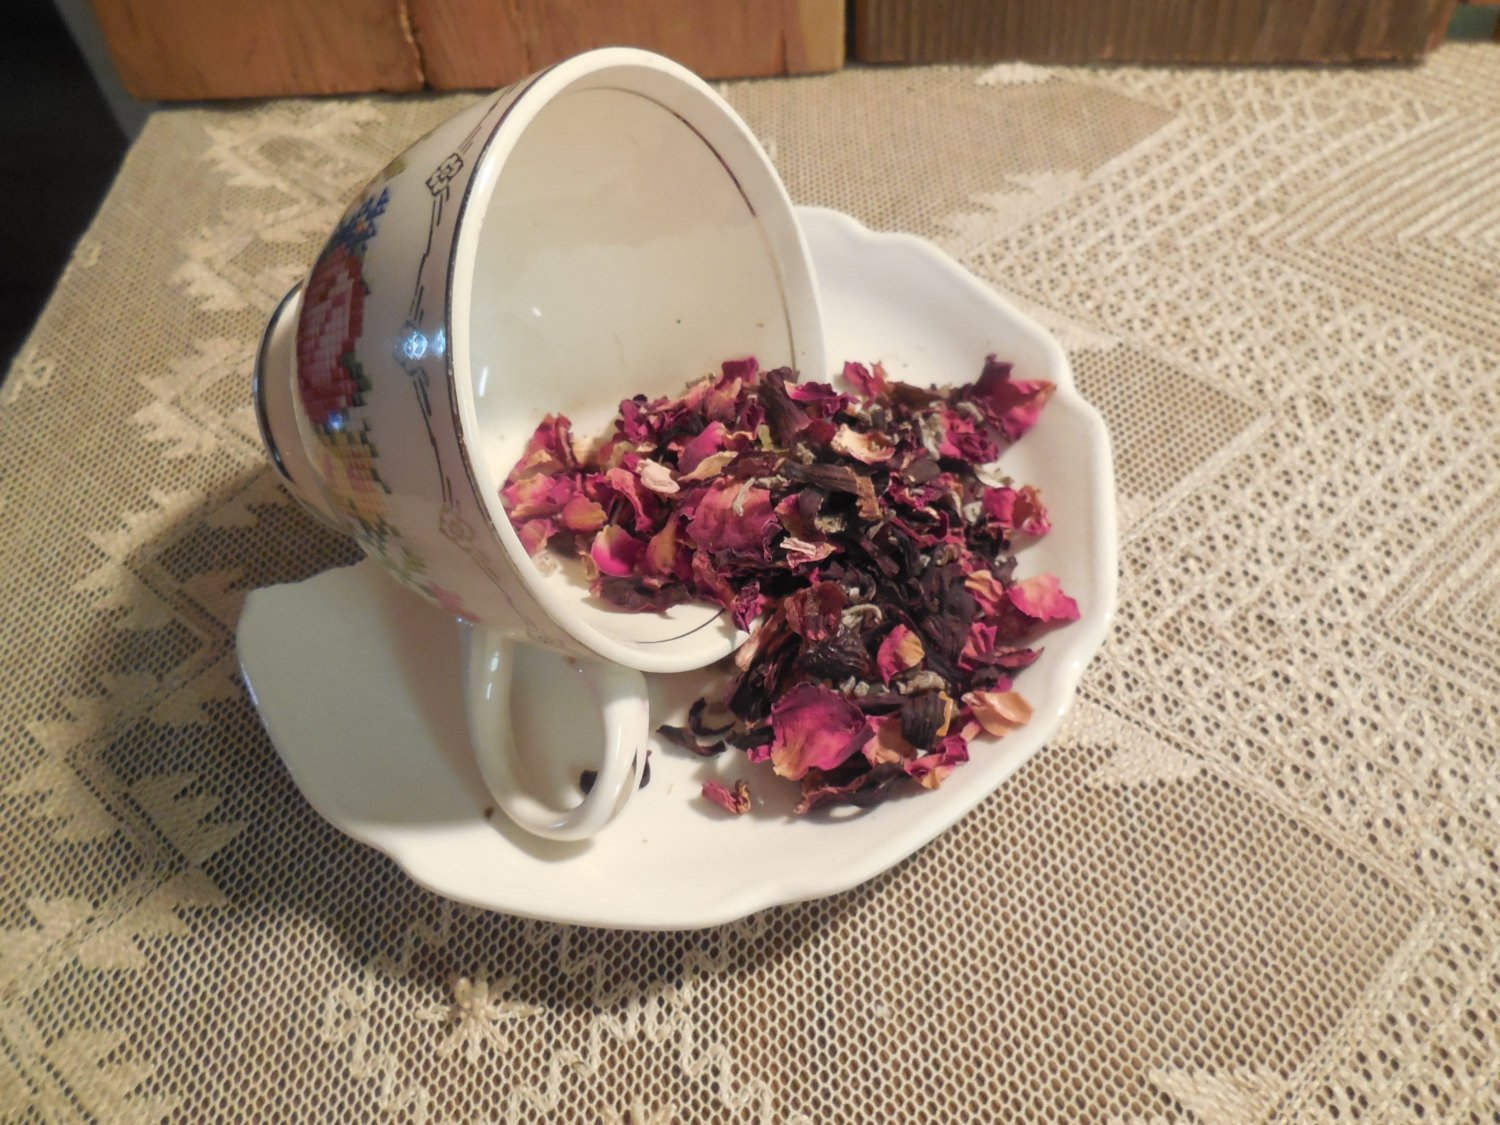 Hibiscus Rose Blush Loose Herbal Tea, rose hips, hibiscus, sage, no caffeine